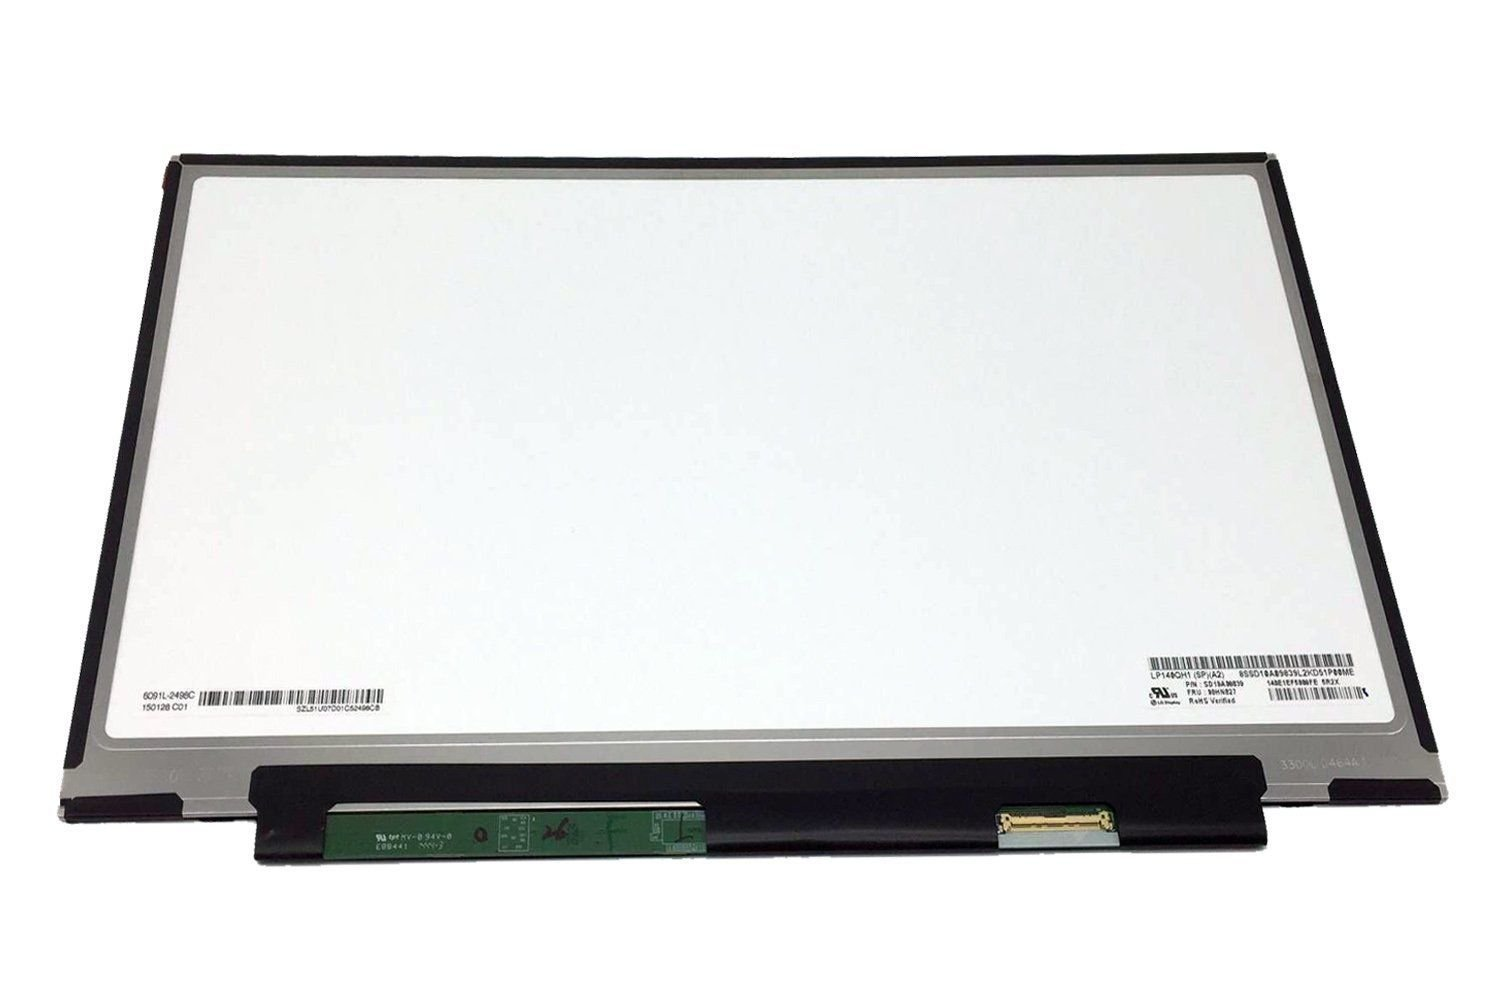 New Genuine Lenovo ThinkPad X1 Carbon No Touch 14.0'' LED QHD 2560x1440 LCD Screen 00HN827 by For Lenovo (Image #2)